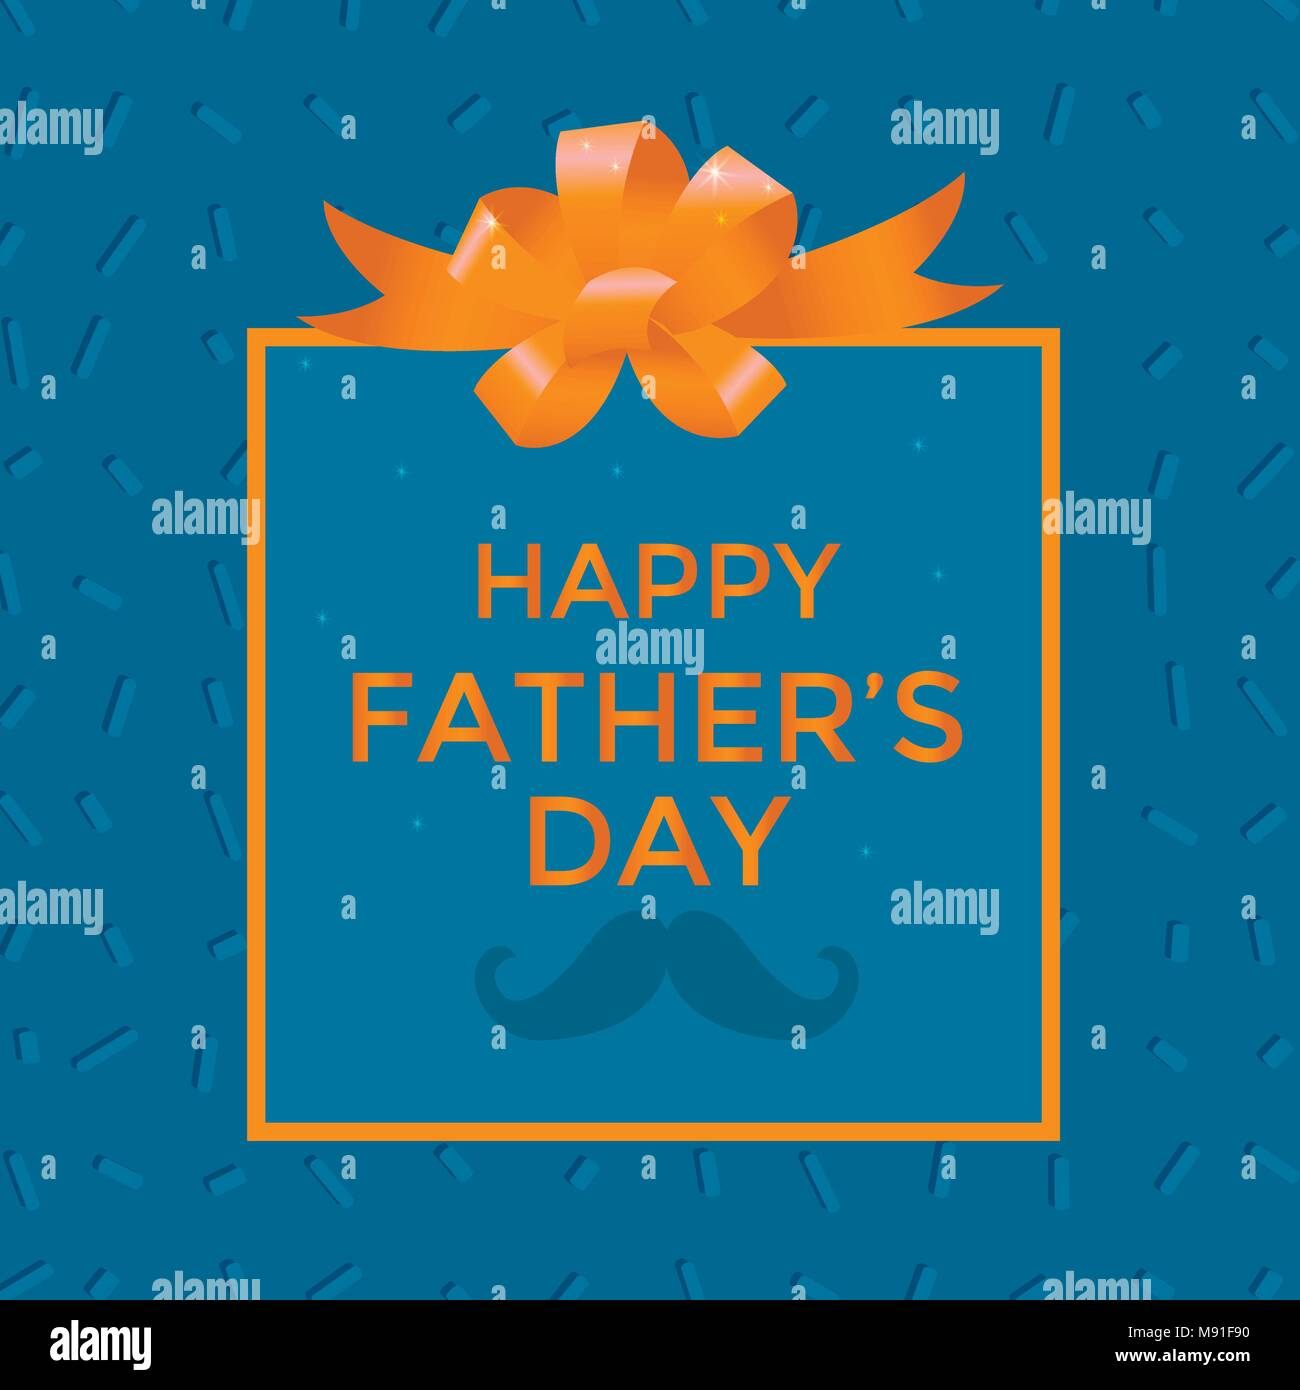 Happy Fathers Day Sale Vector Illustration For Promotion Poster